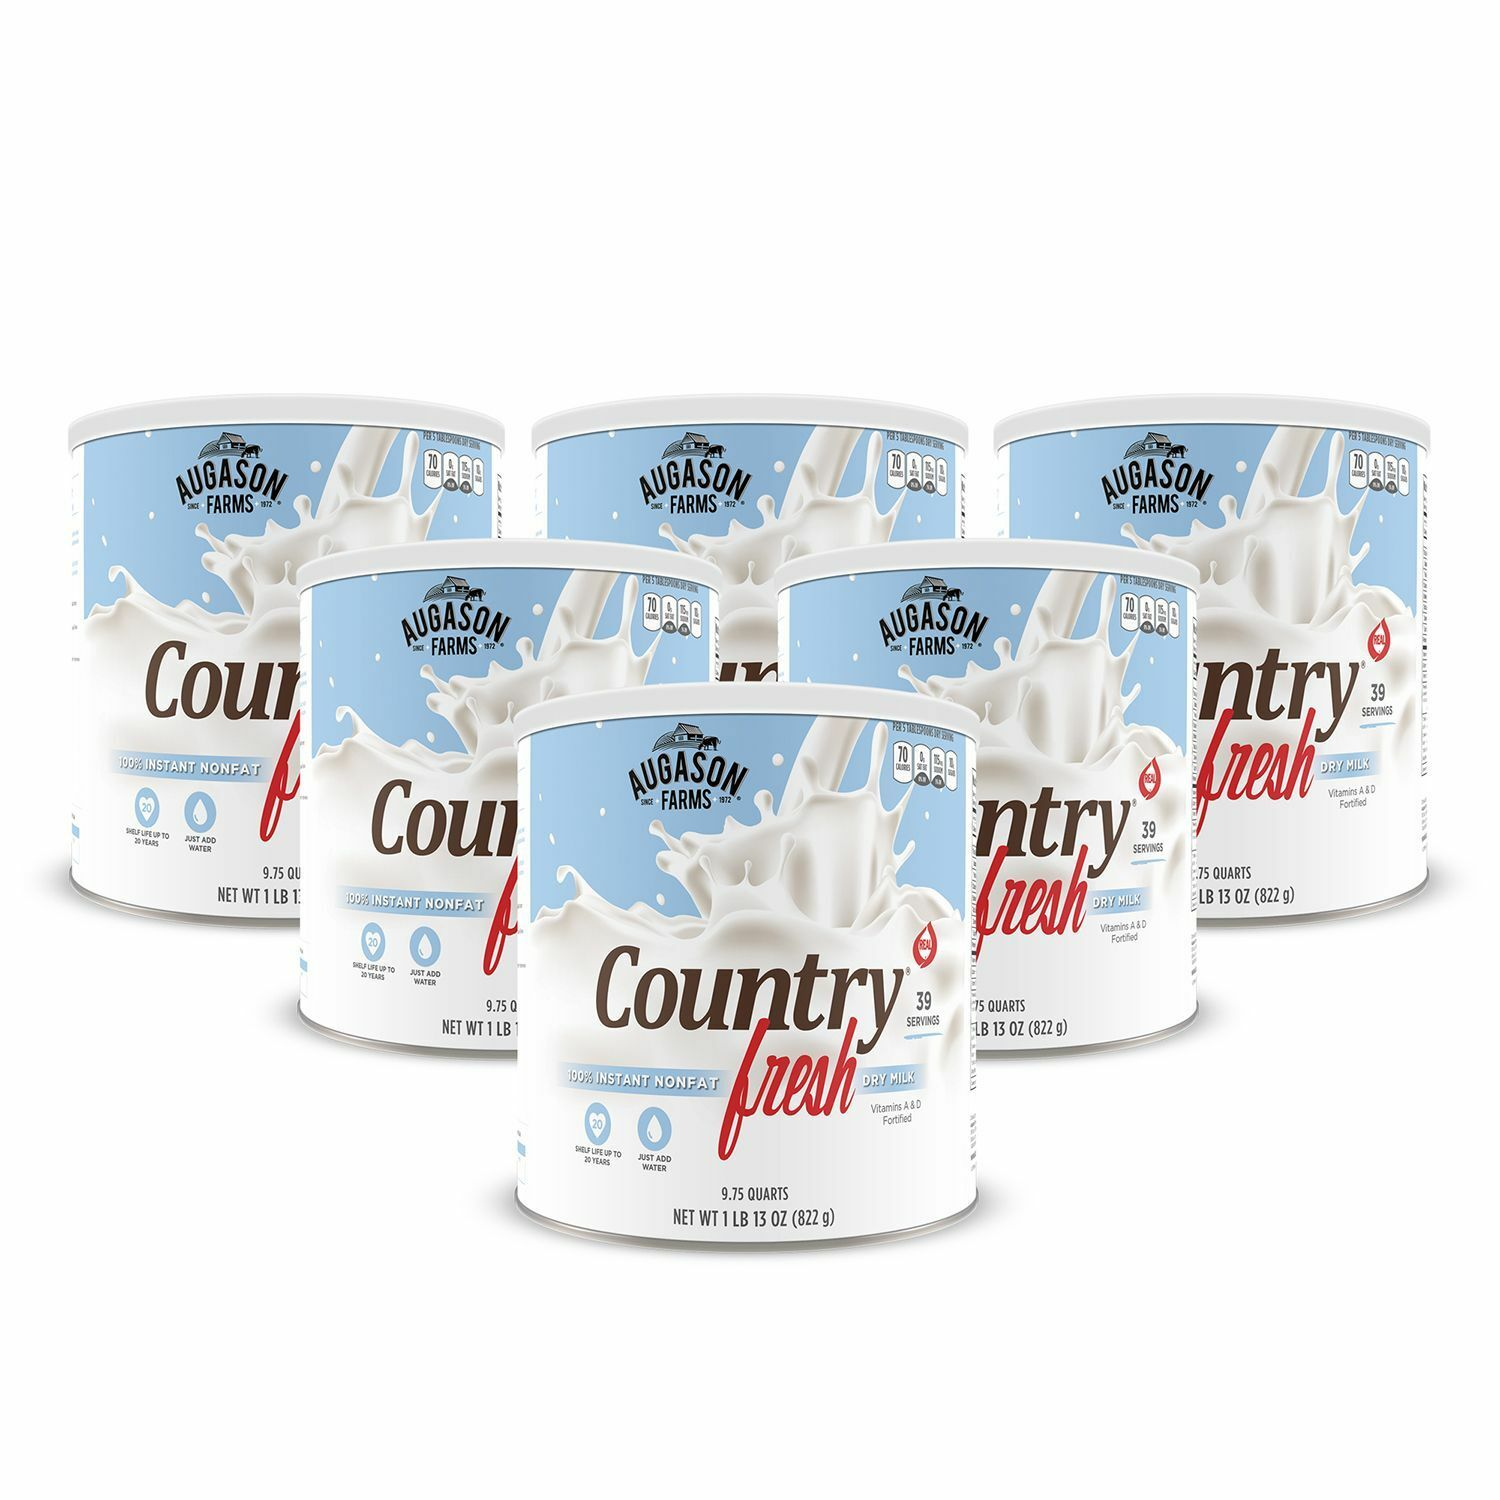 Augason Farms  6 pk Dry Milk Country Fresh Instant 100% Nonfat - Large cans